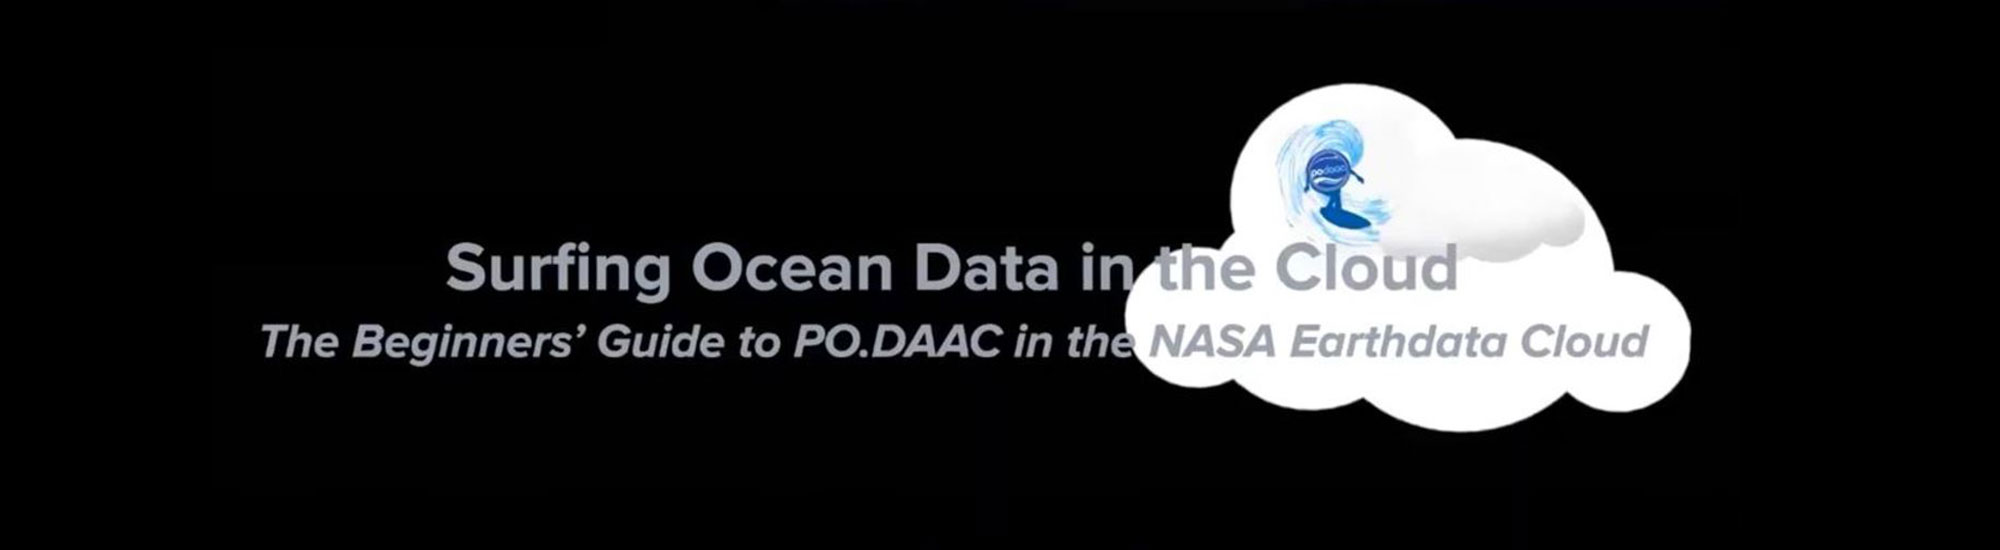 This graphic illustrates information gathered from the Webinar: Surfing Ocean Data in the Cloud—The Beginners' Guide to PO.DAAC in the NASA Earthdata Cloud